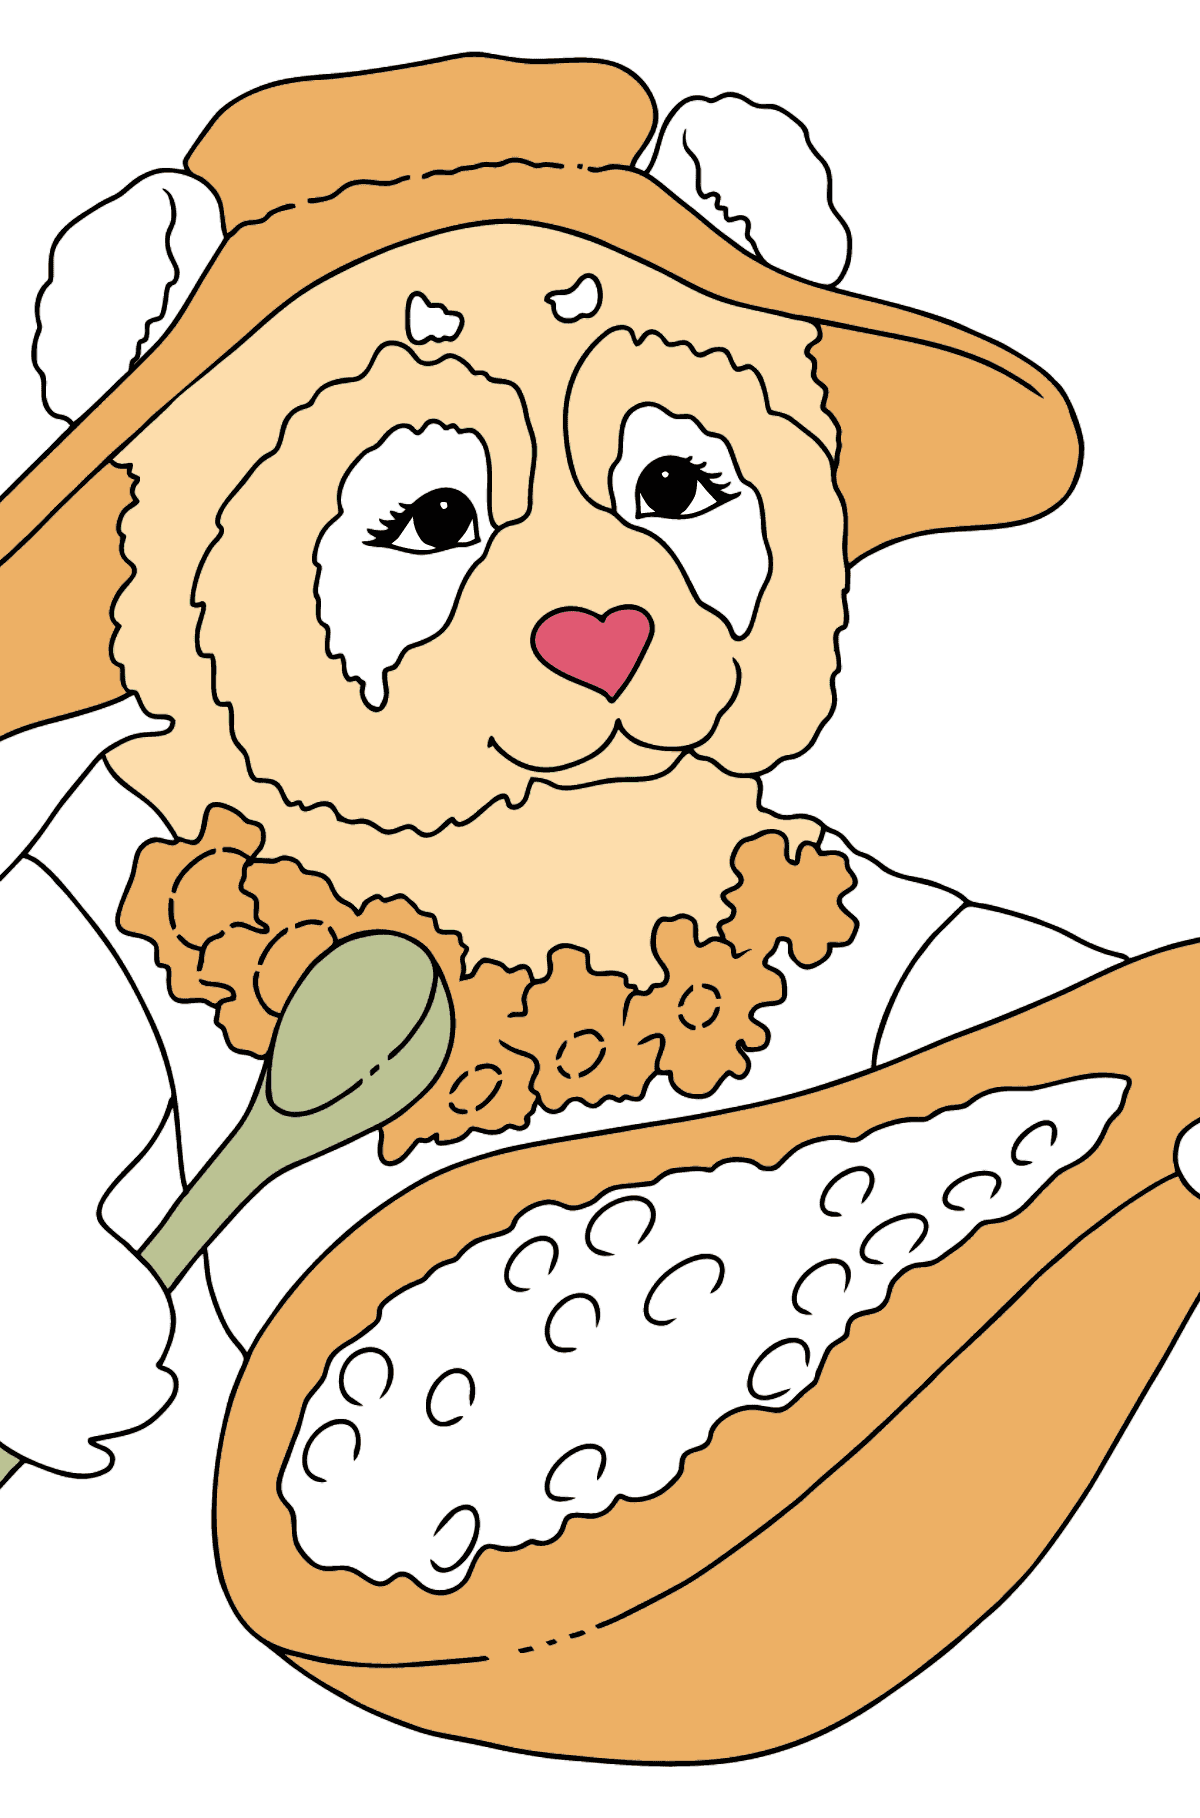 Coloring Page - A Panda is Having Lunch - Coloring Pages for Kids